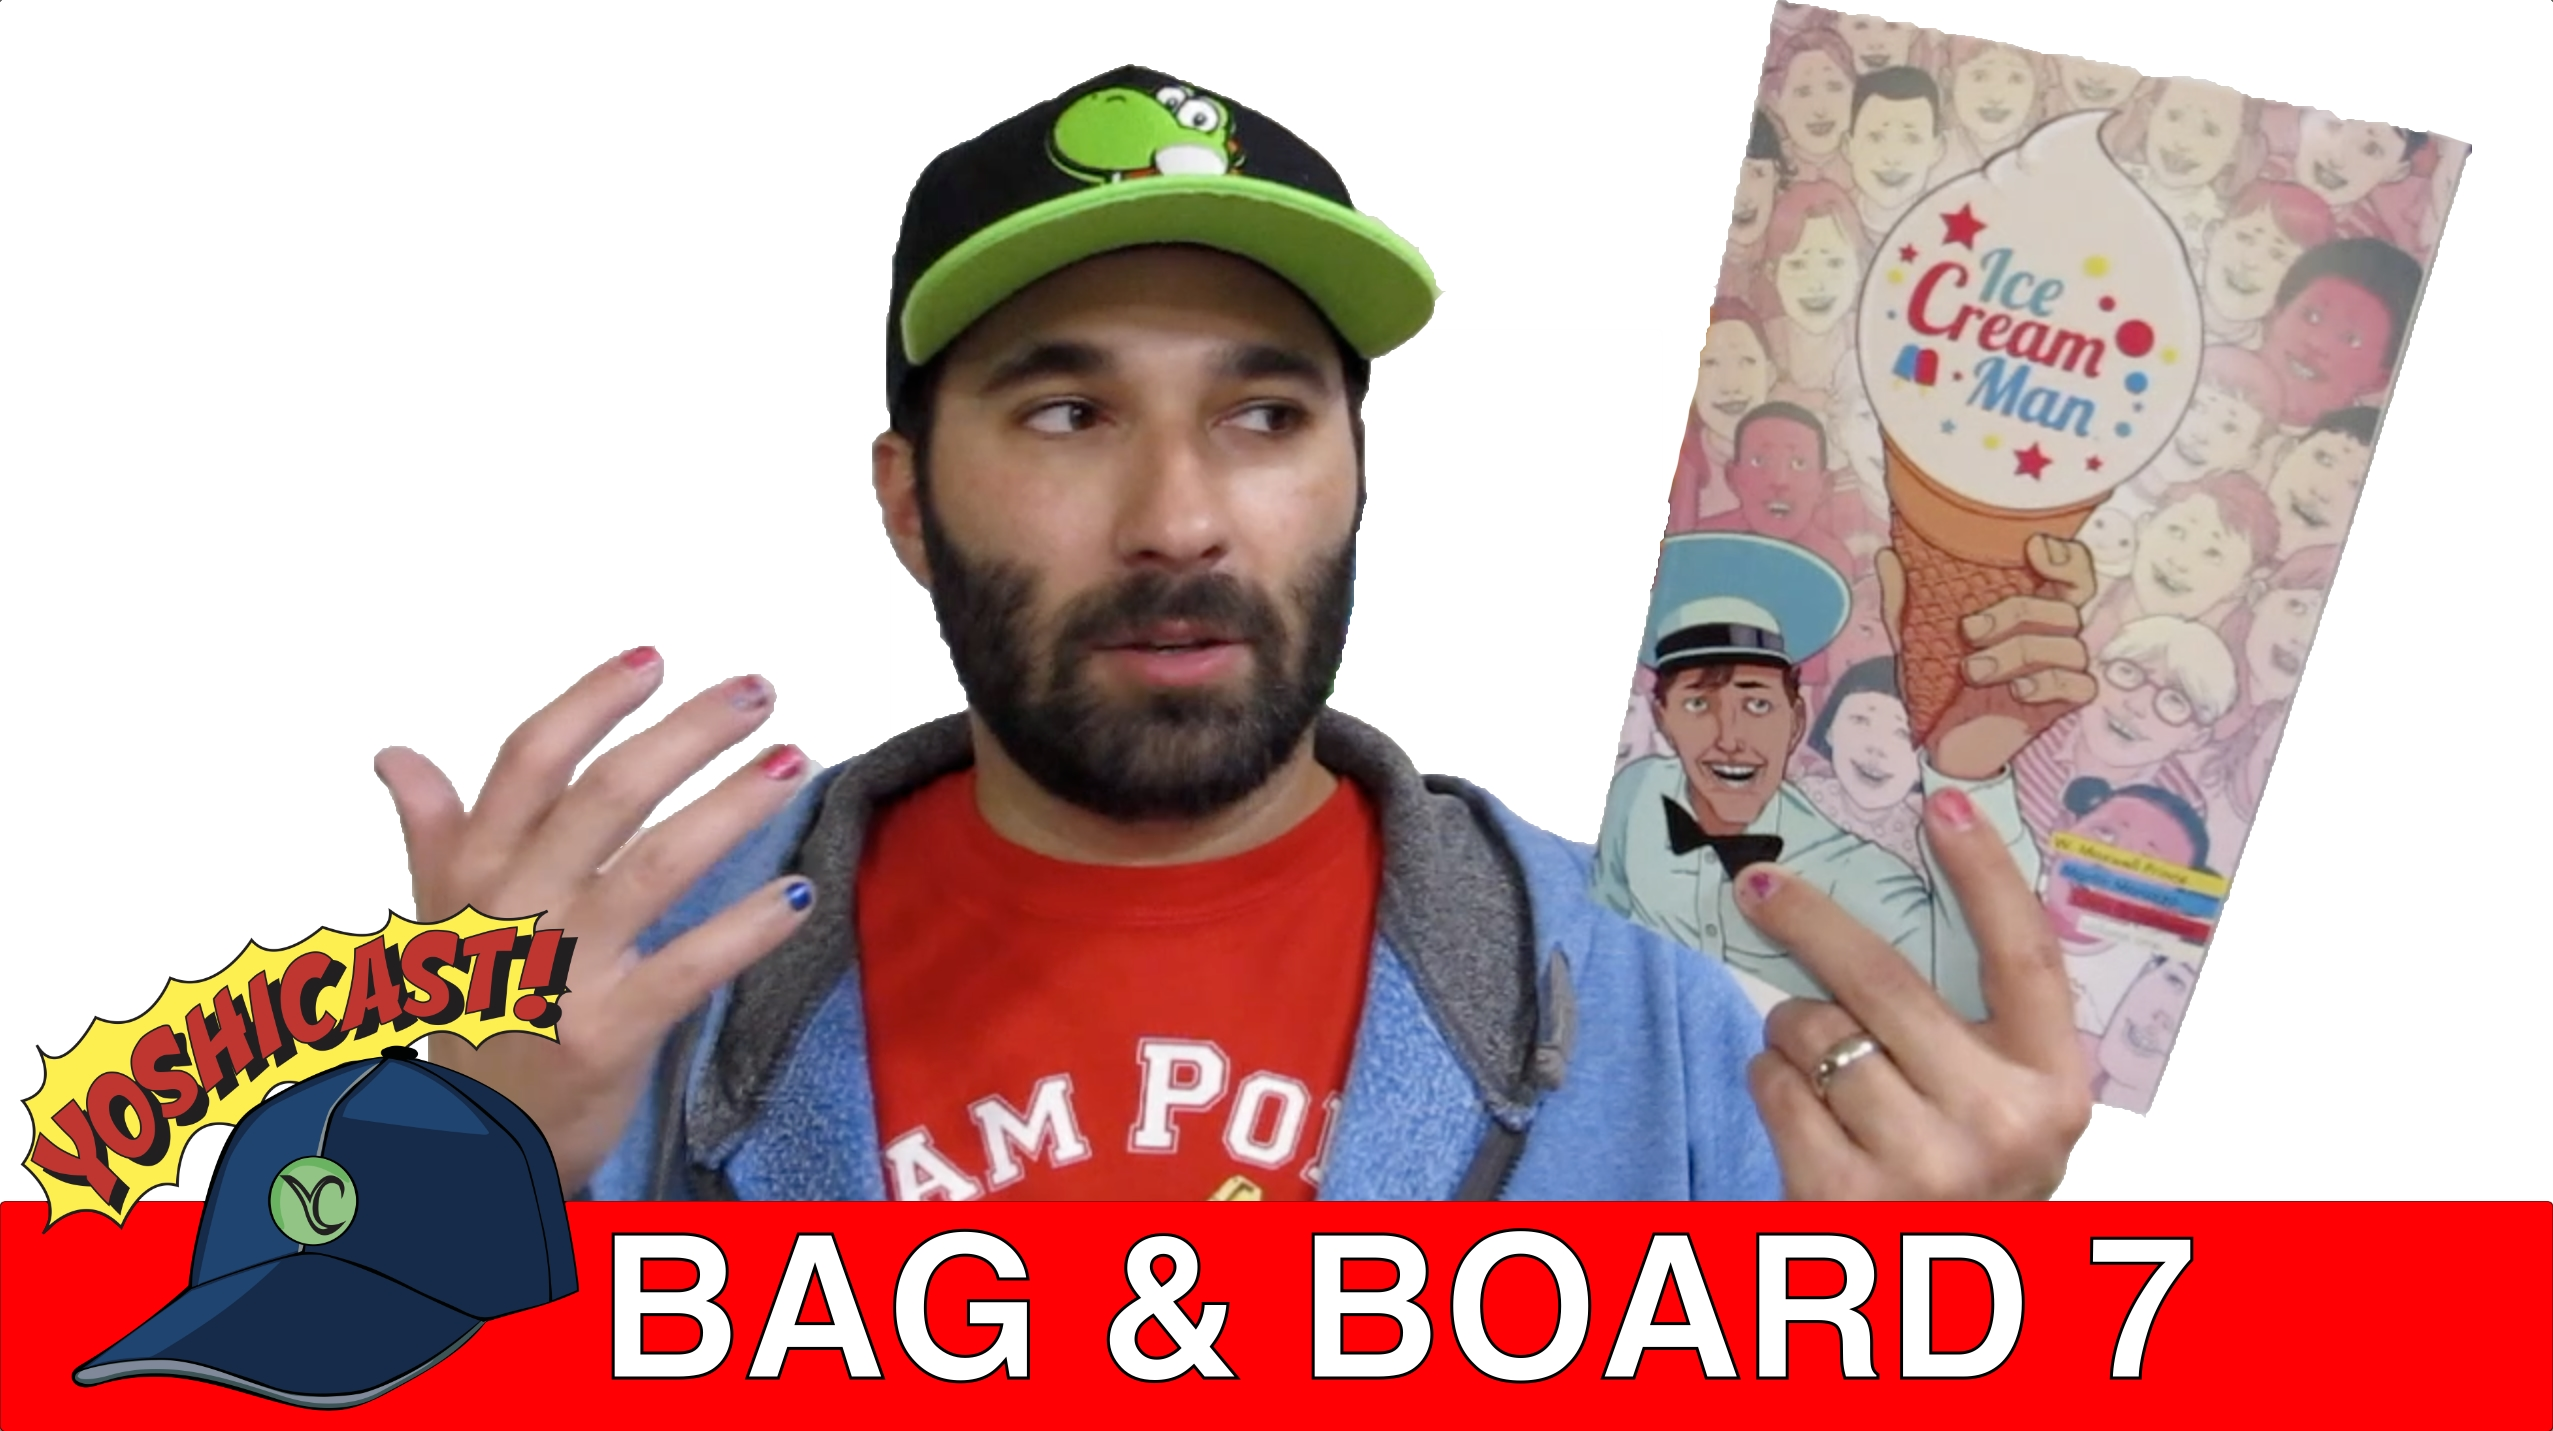 Bag & Board 7 | New Comic Book Pickups ICE CREAM MAN, PUNISHER, GHOST RIDER, DAREDEVIL, And More